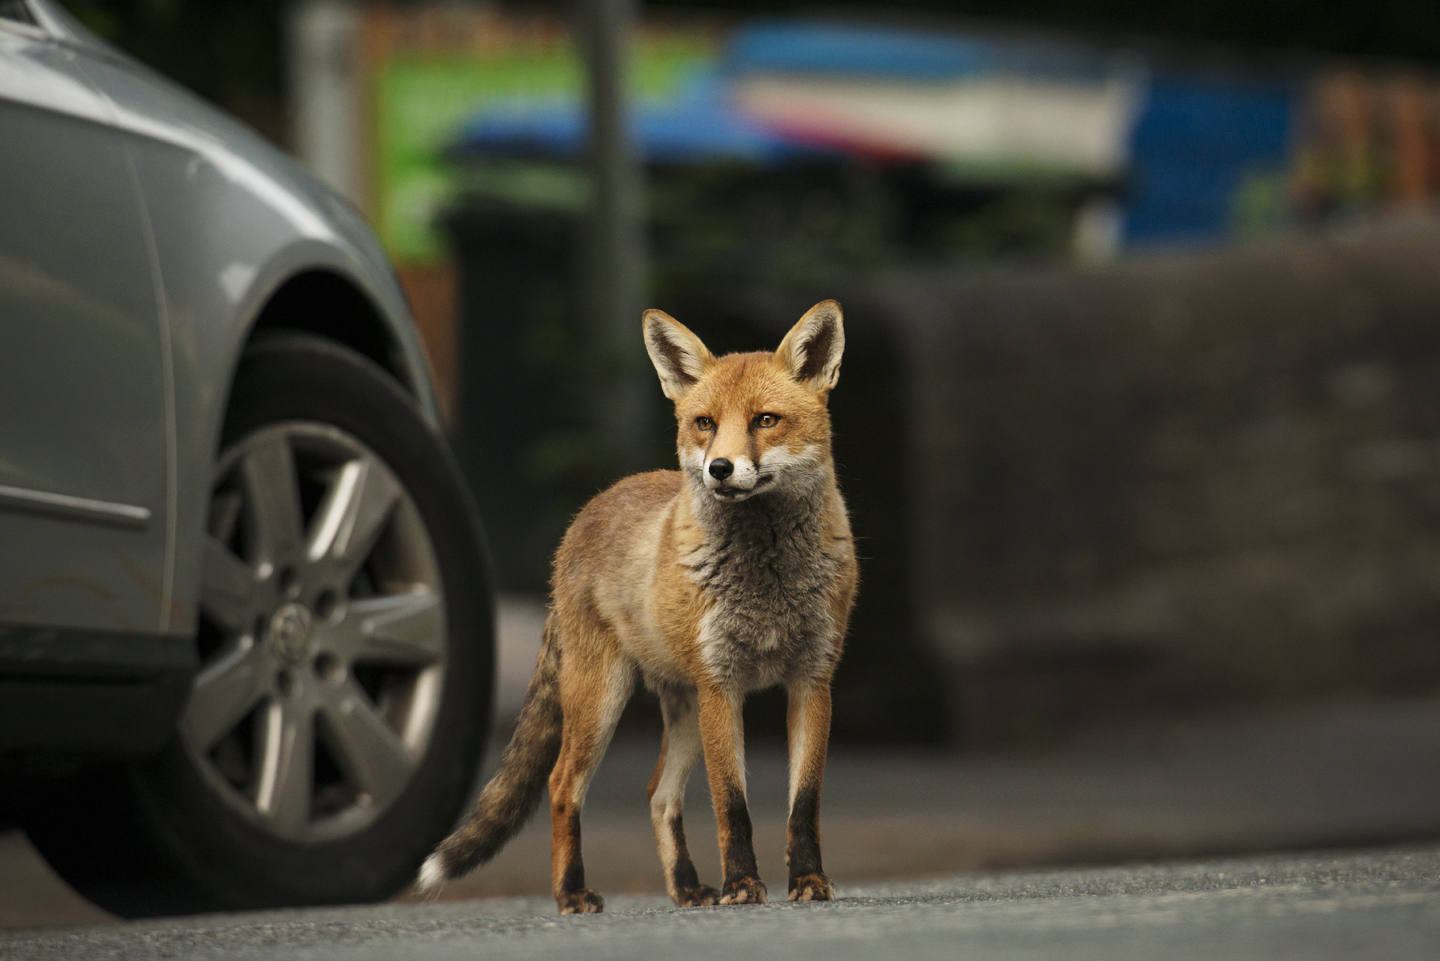 Cars can also be a big killer. Around 50% of urban foxes die on our roads, with young foxes in most danger. Adults are much more streetwise and know their green cross code